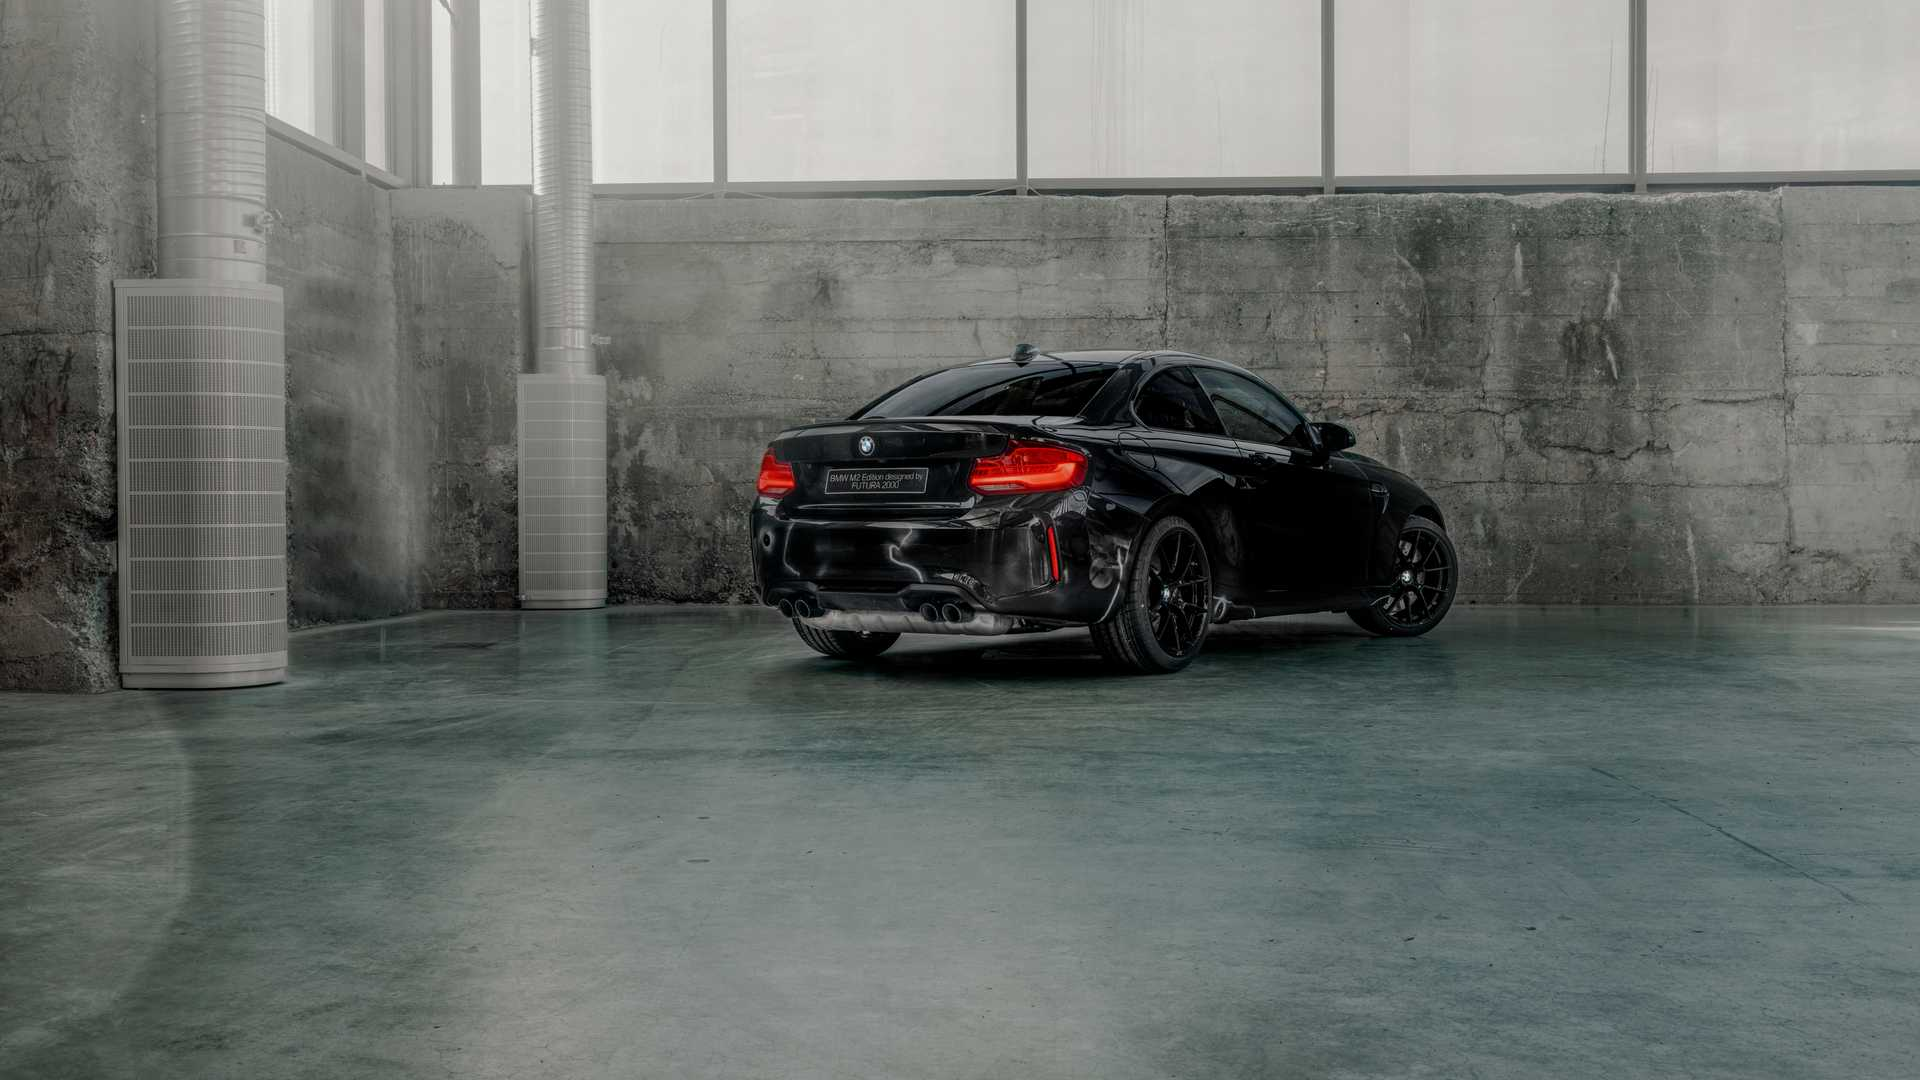 bmw-m2-competition-by-futura-2000-11